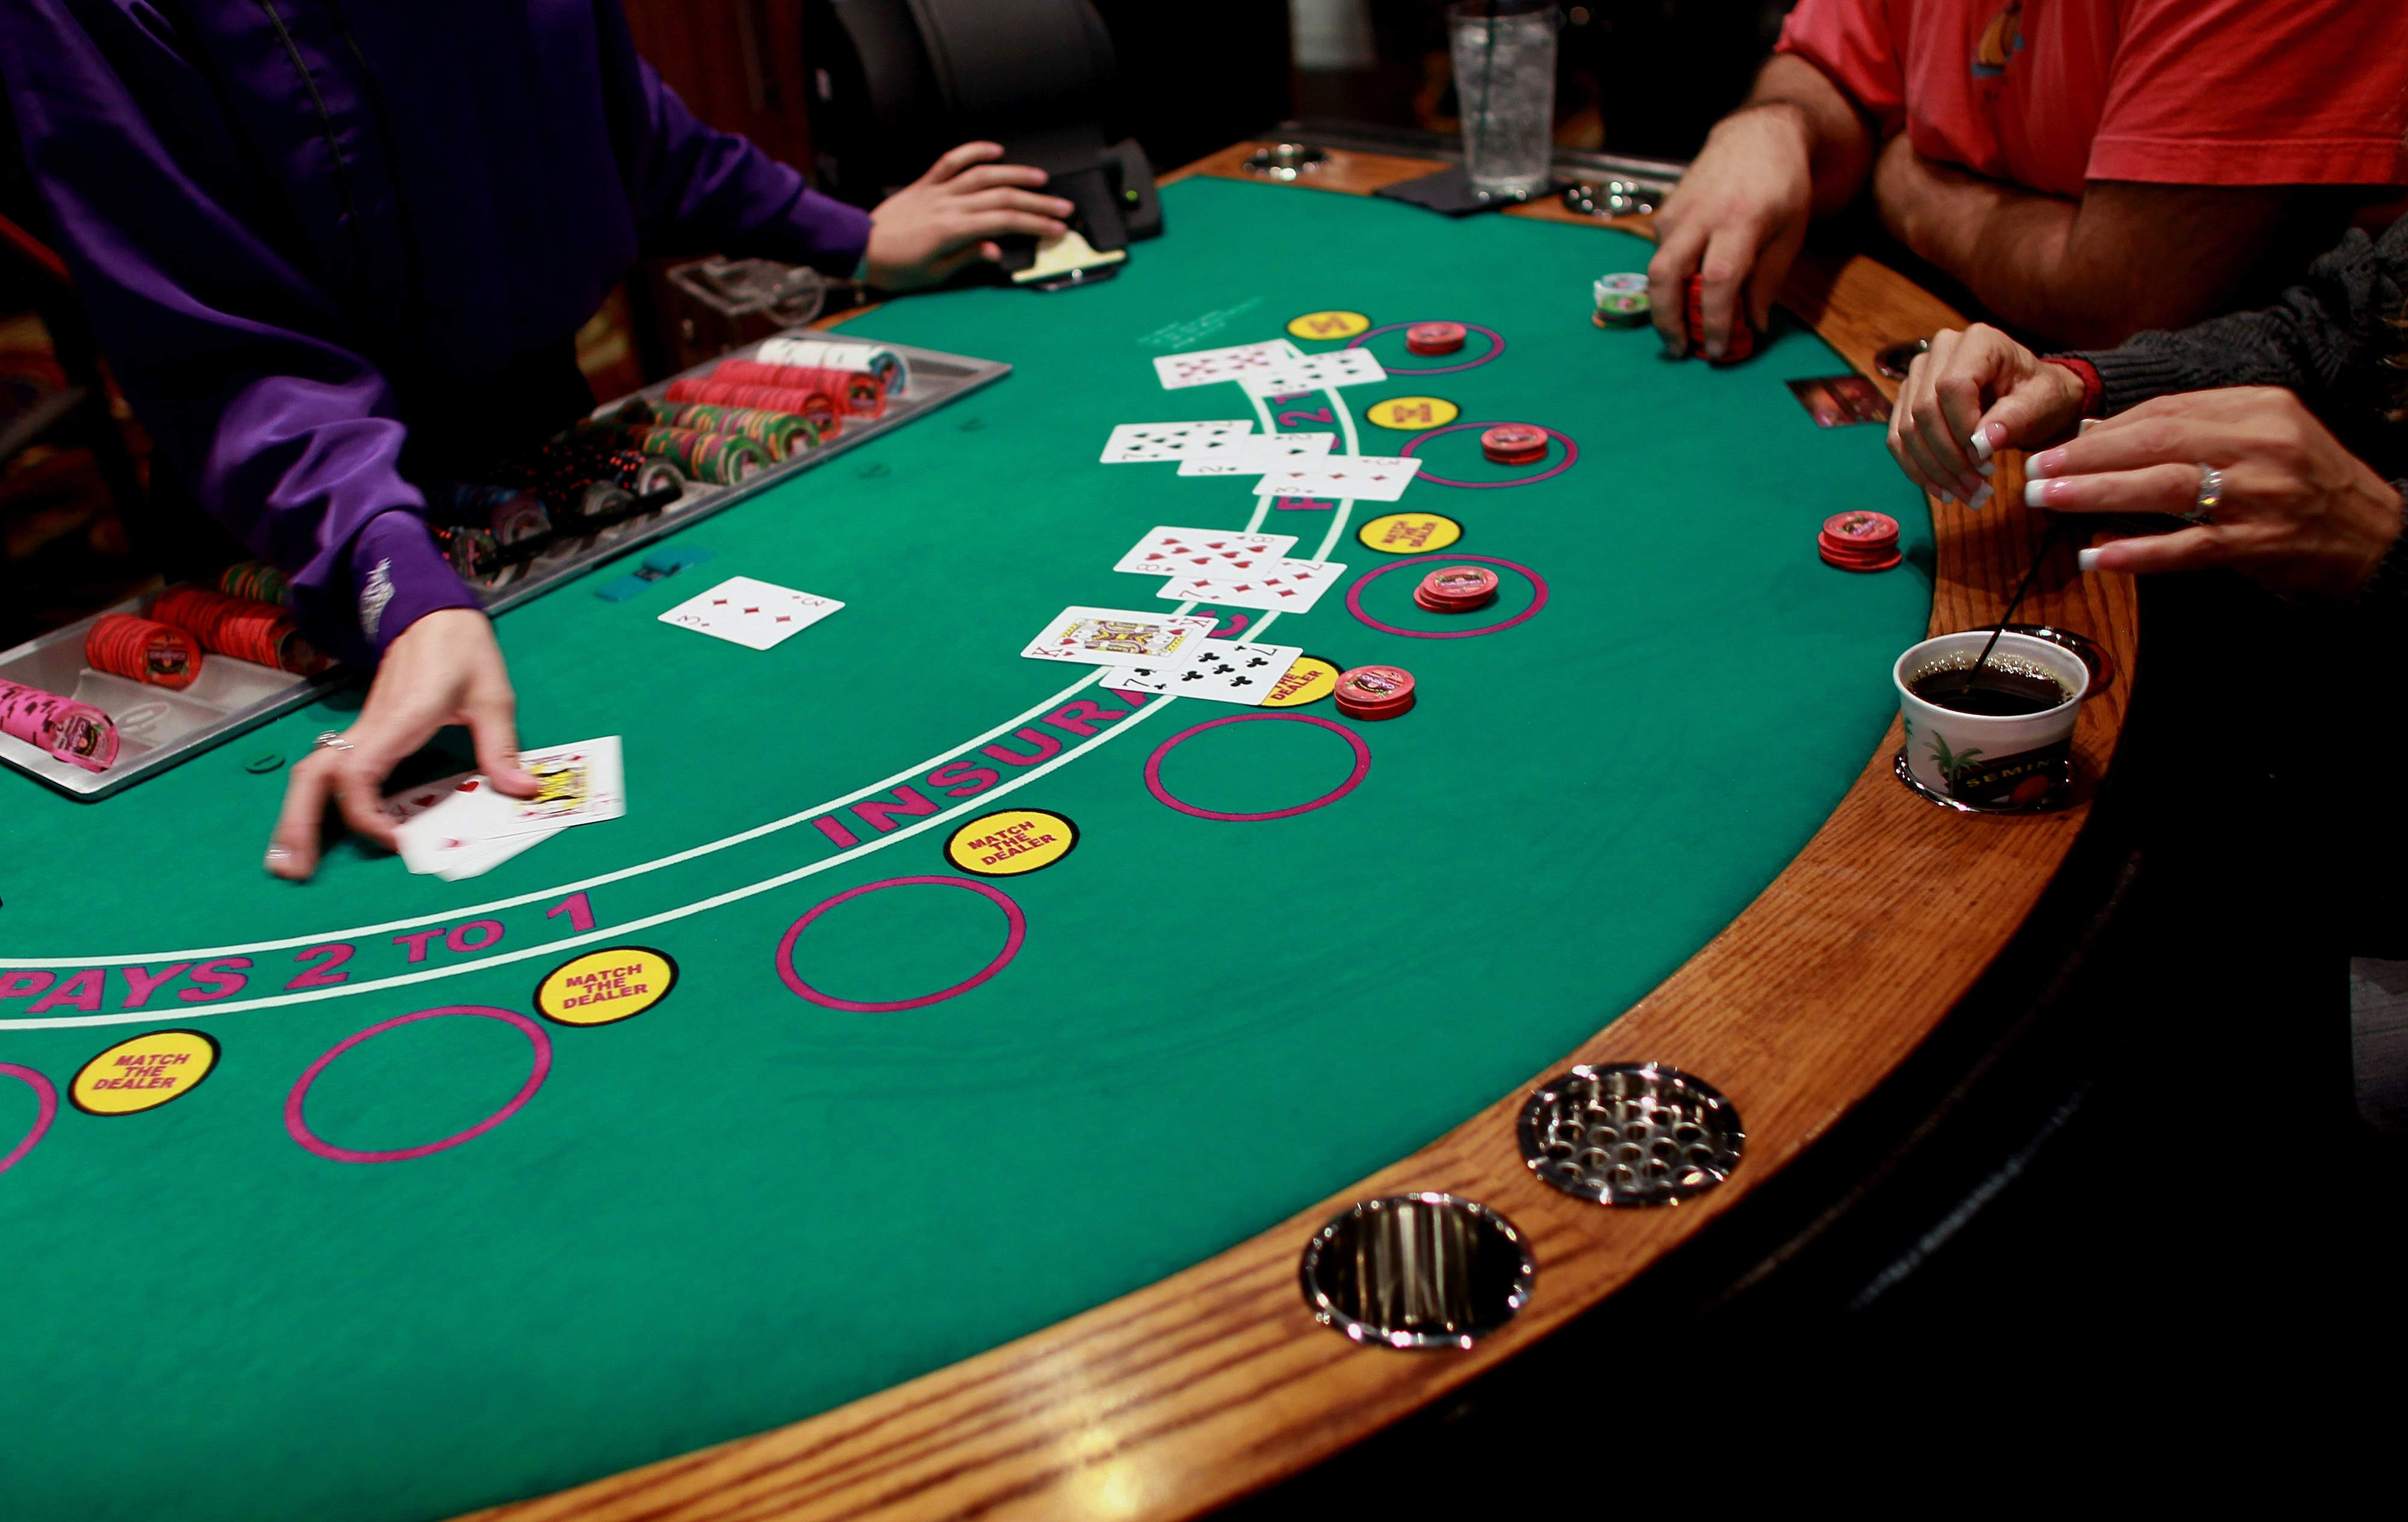 Gambling blackjack online gambling in ohio